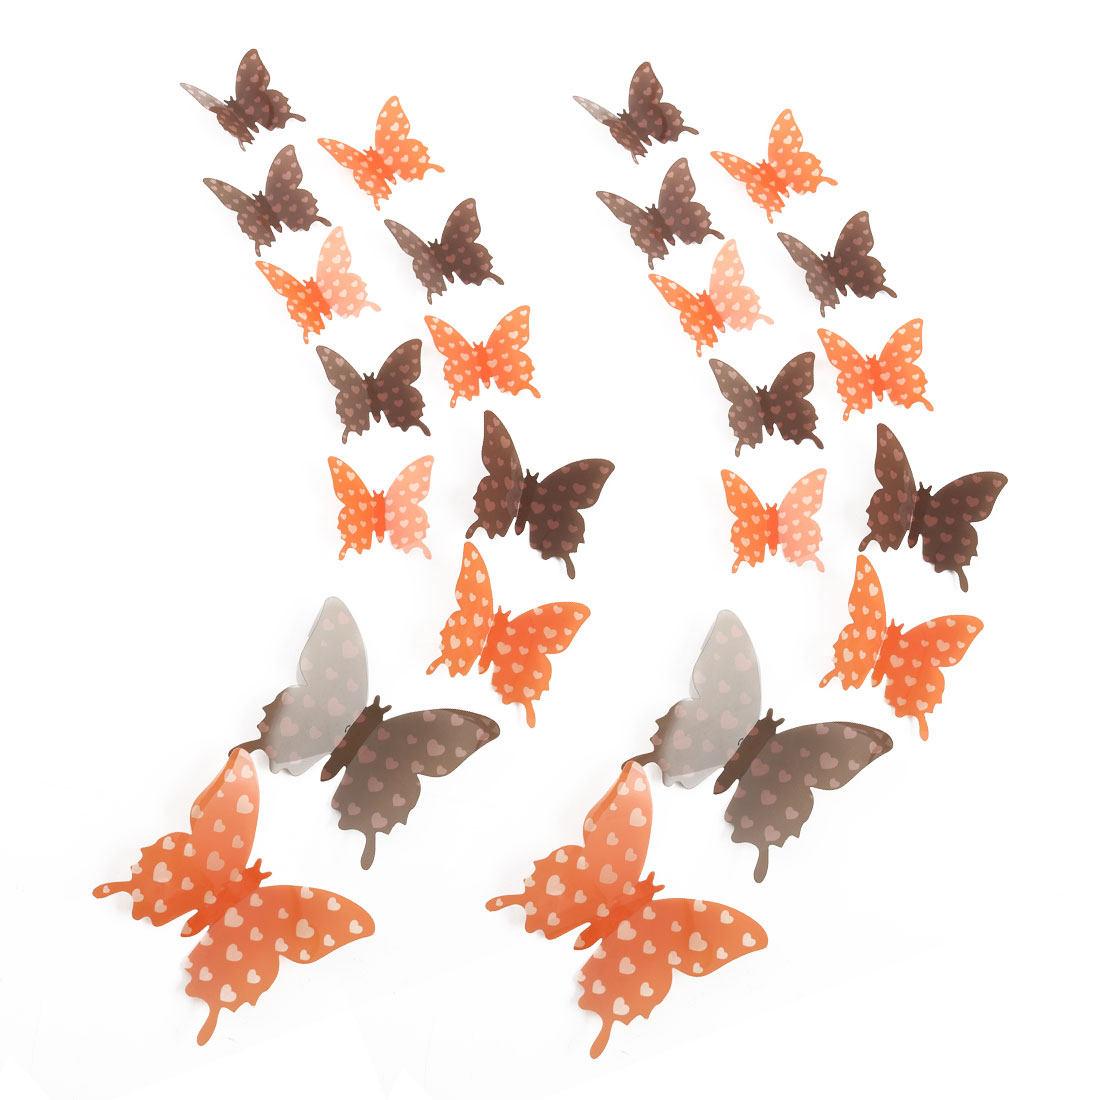 24pcs 3D Butterfly DIY Wall Sticker for Room Decoration Orange Brown